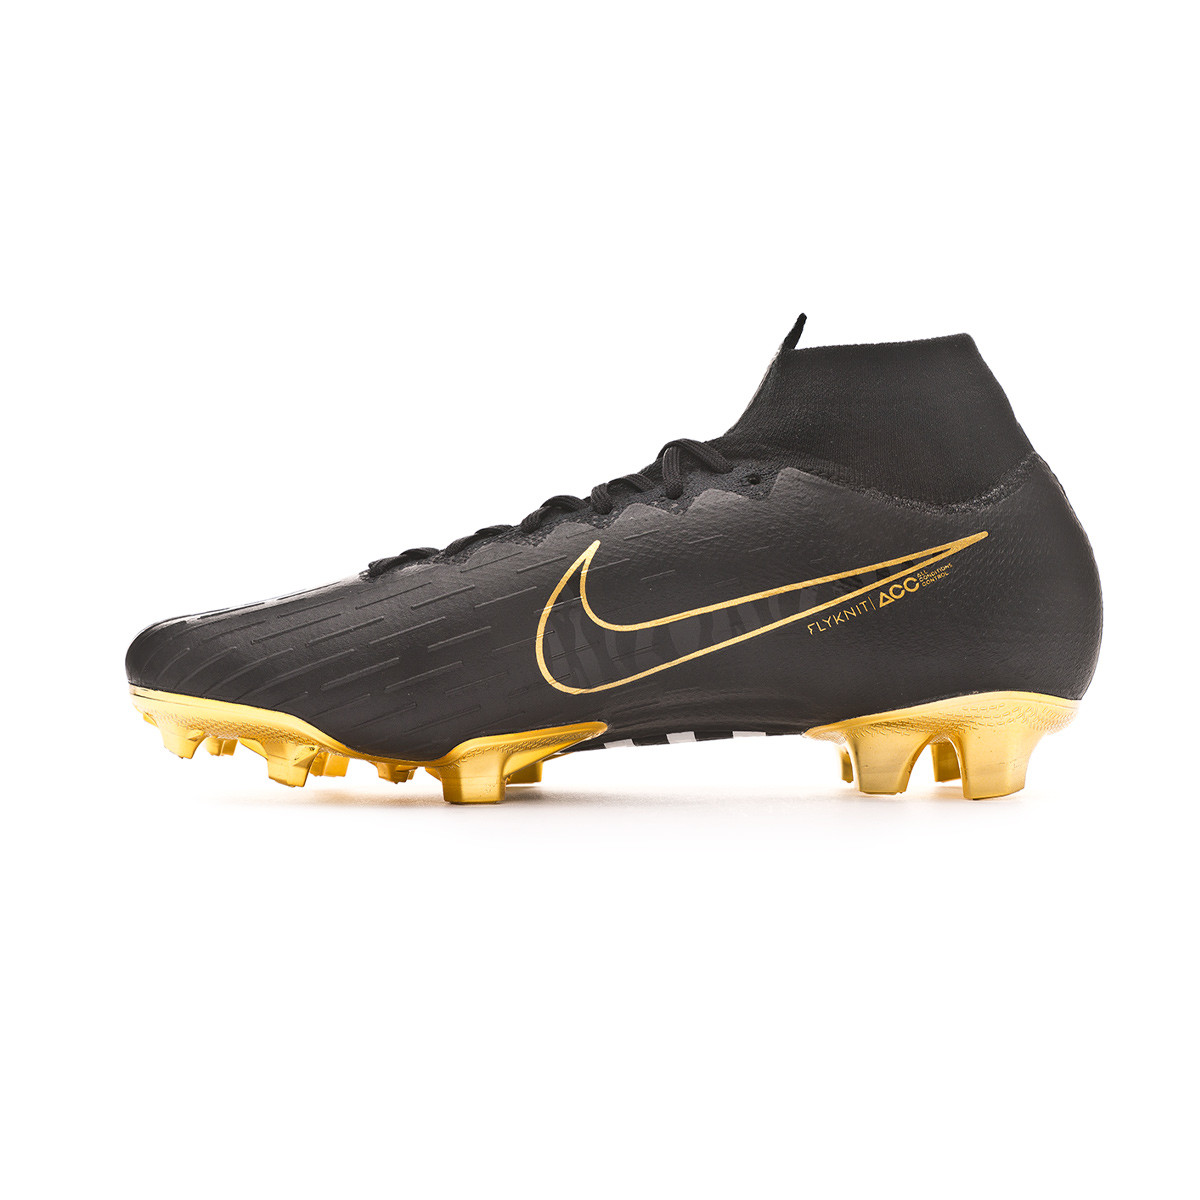 ae13d496b52 Bota Mercurial Superfly VI Elite CR7 Special Edition FG Black-Metallic  vivid gold